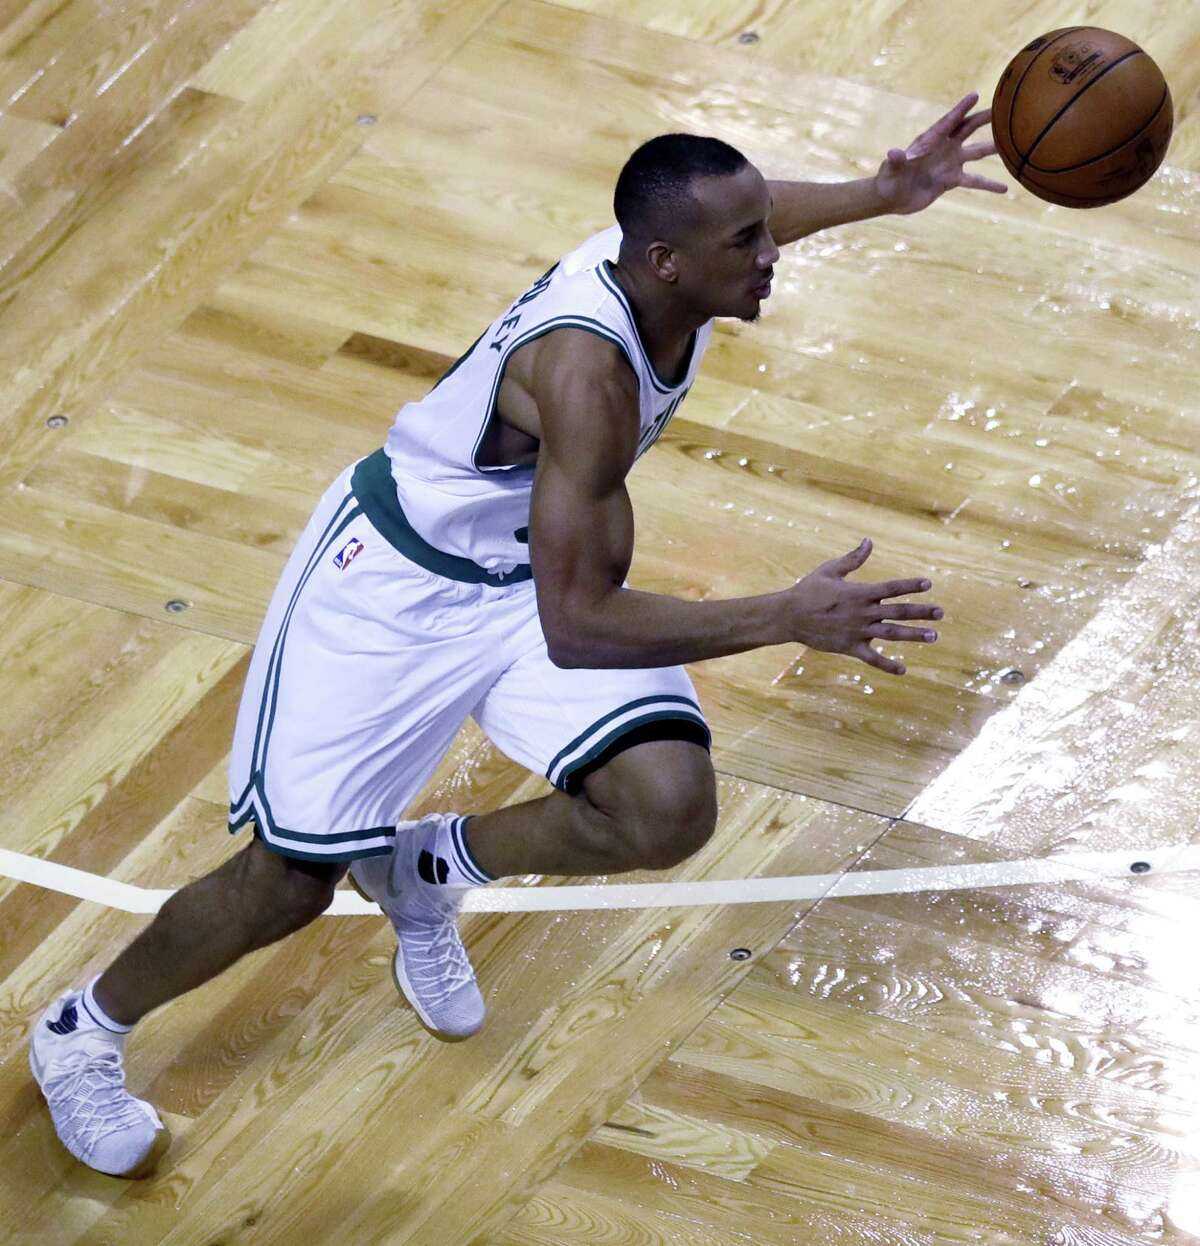 Boston Celtics guard Avery Bradley (0) dribbles down court during the fourth quarter of a first-round NBA playoff basketball game in Boston, Wednesday. The Celtics defeated the Bulls 108-97.